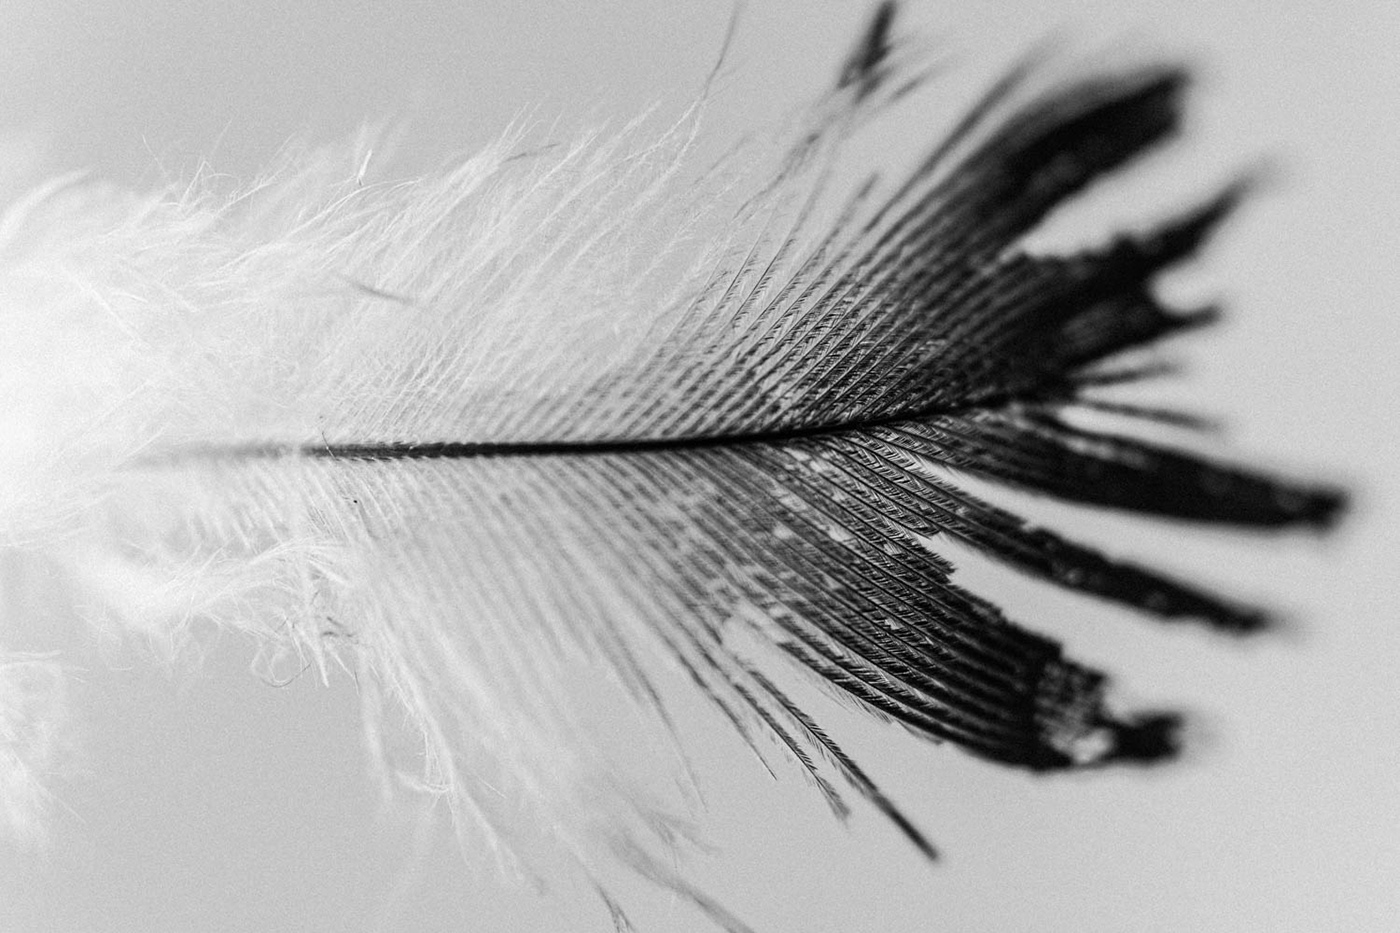 Black and white feather photo.